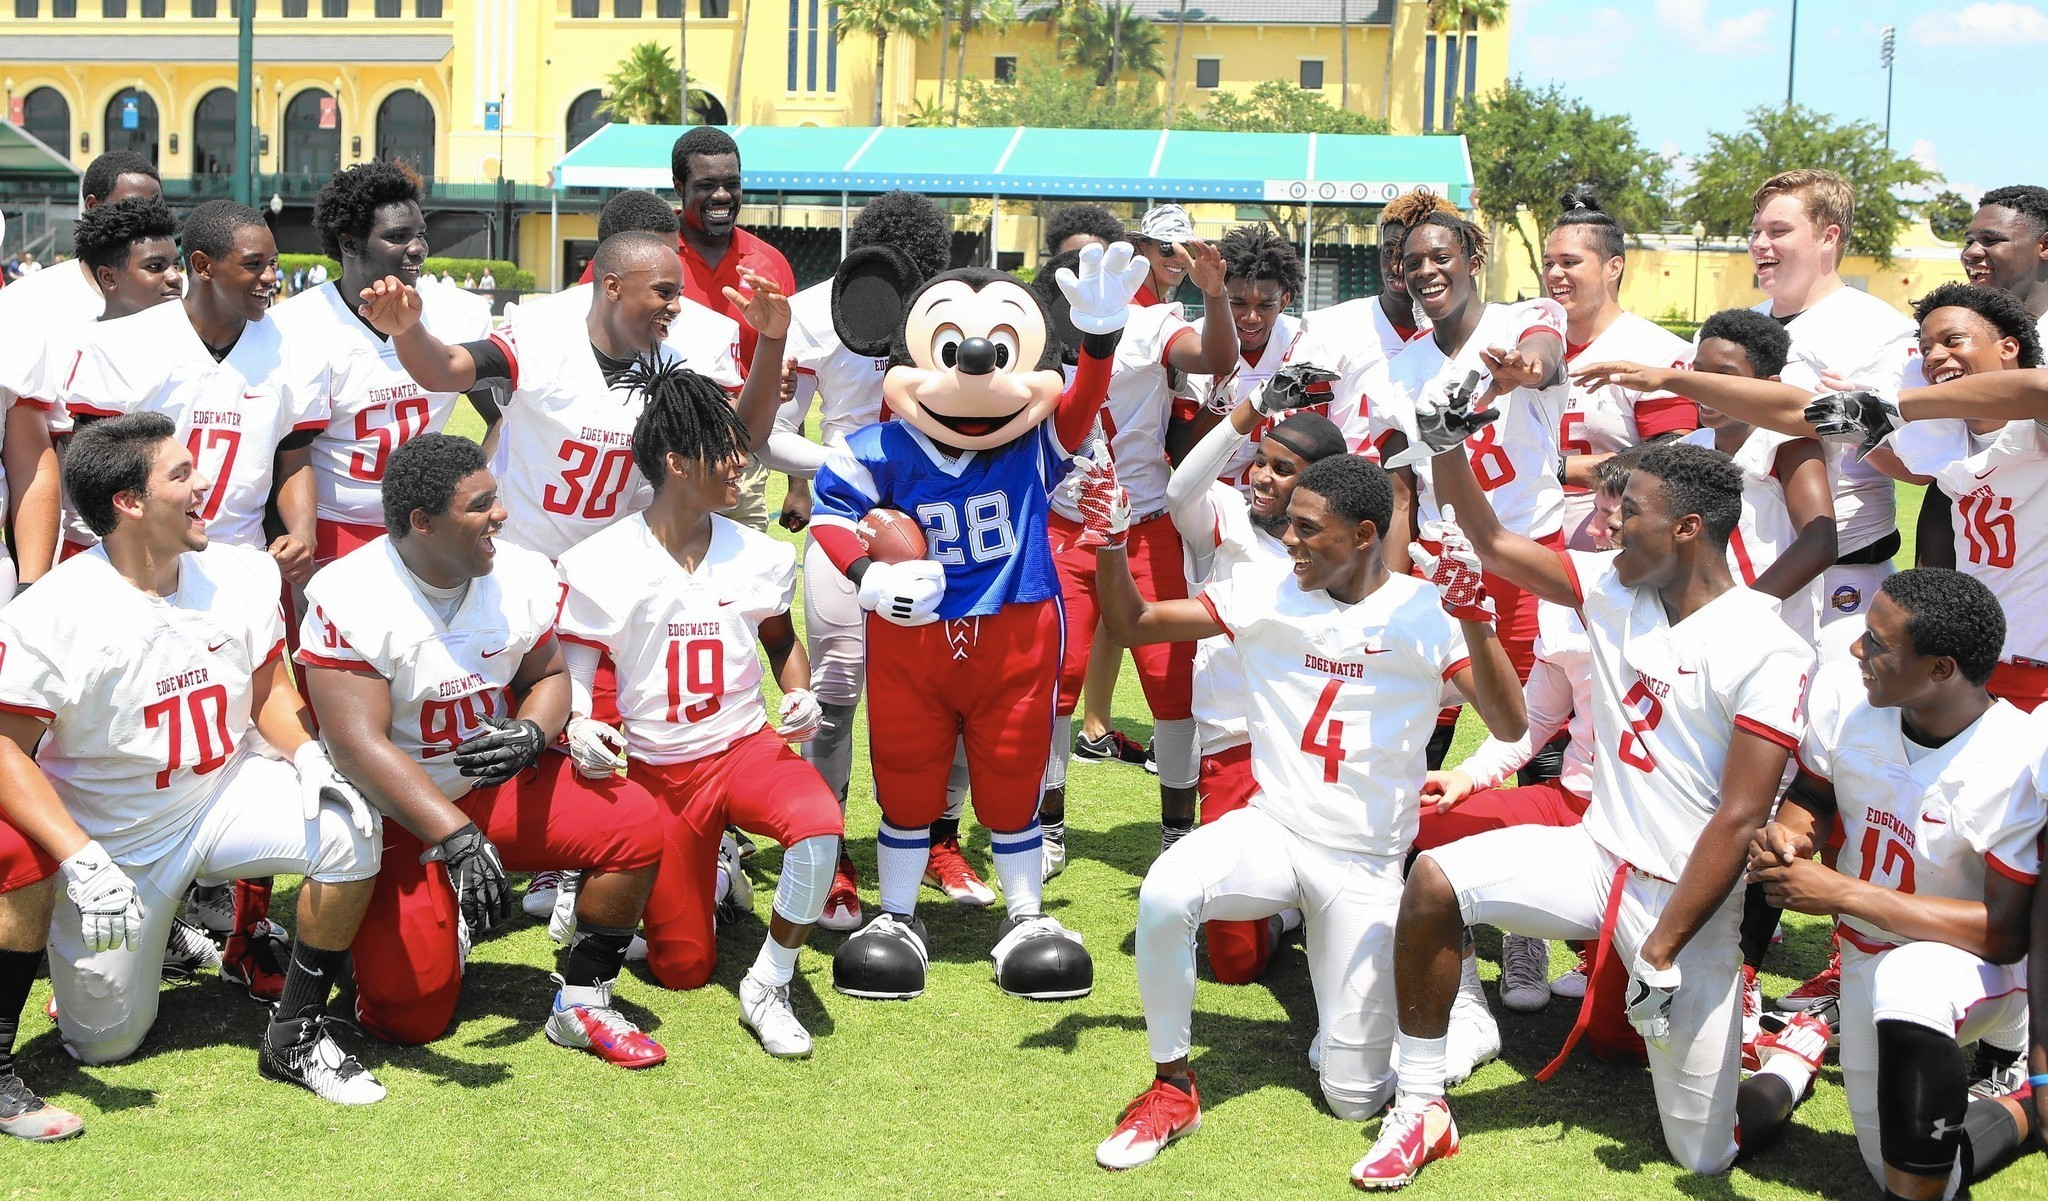 Nfl pro bowl in orlando will include dodgeball for all star players orlando sentinel